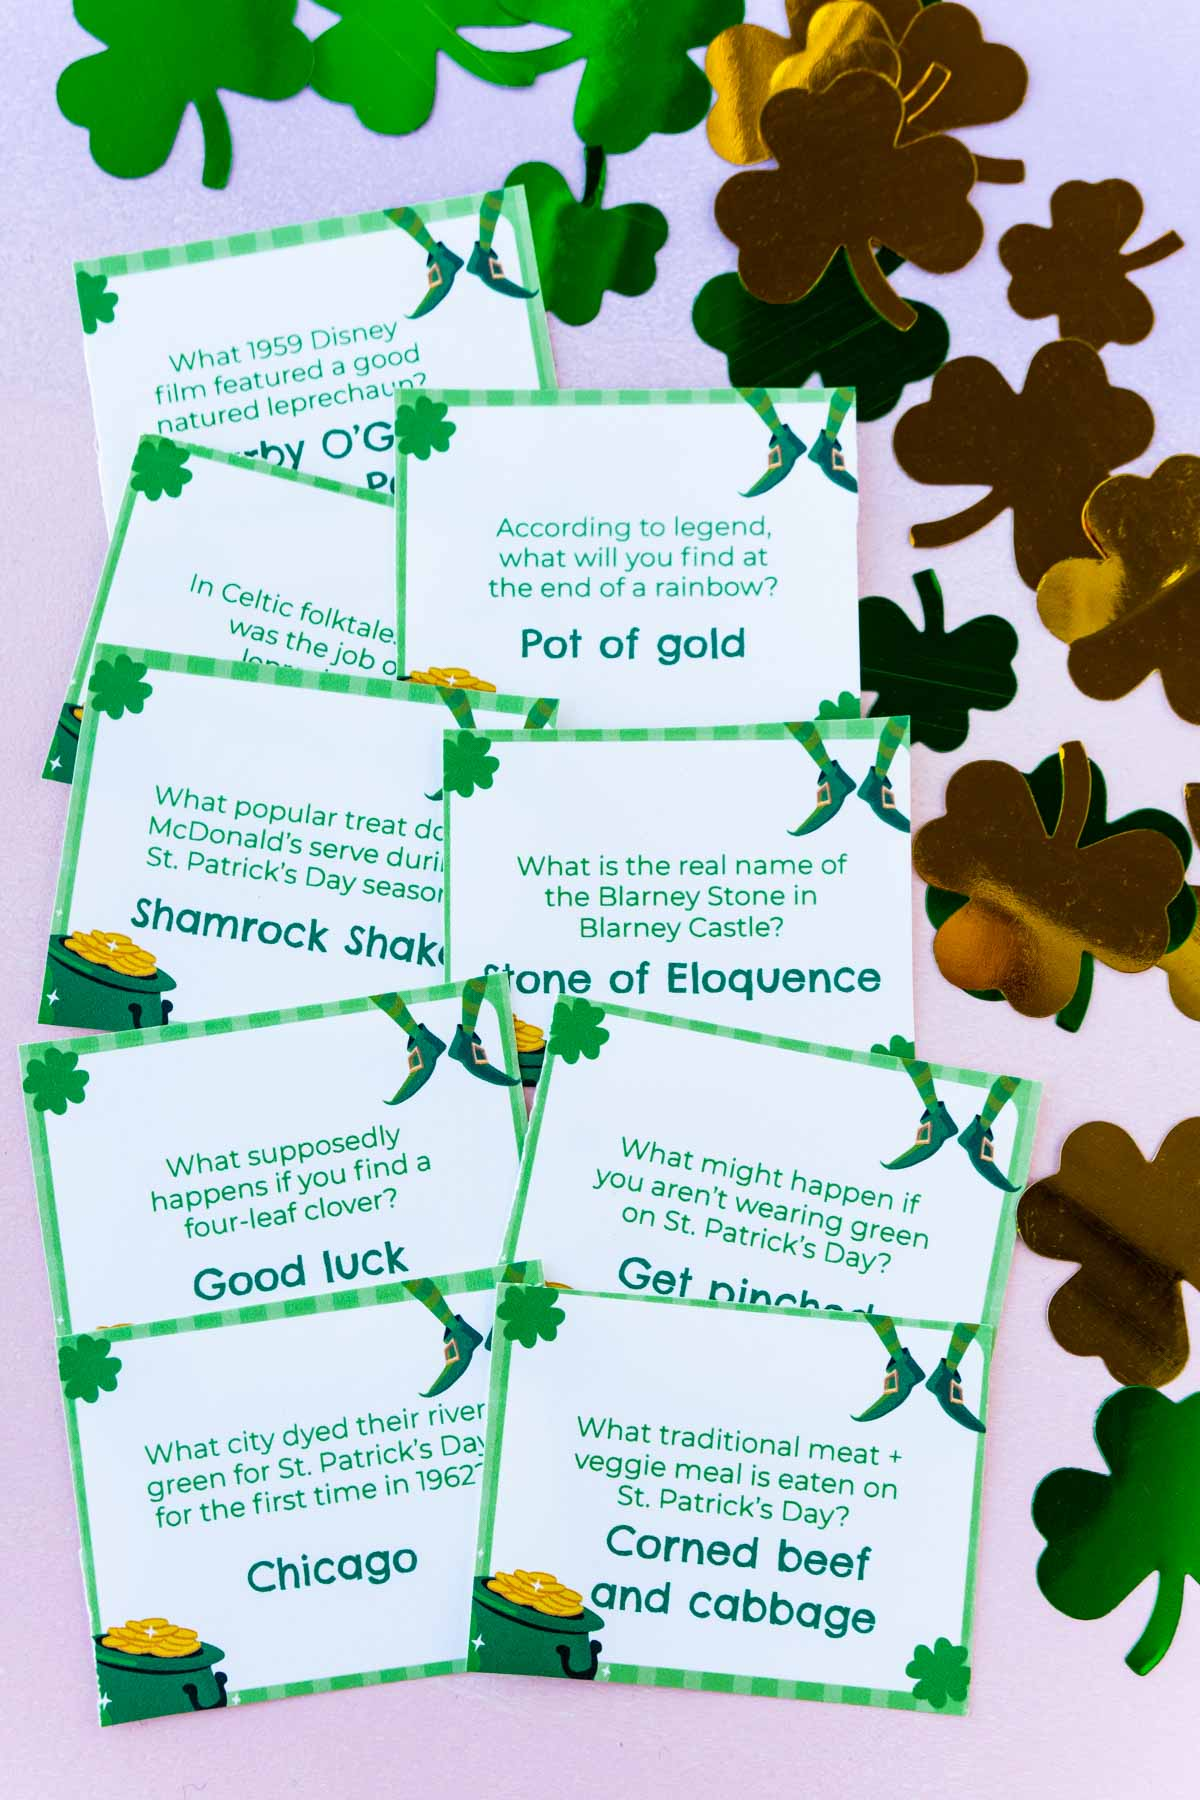 Pile of printed out St. Patrick's Day trivia questions